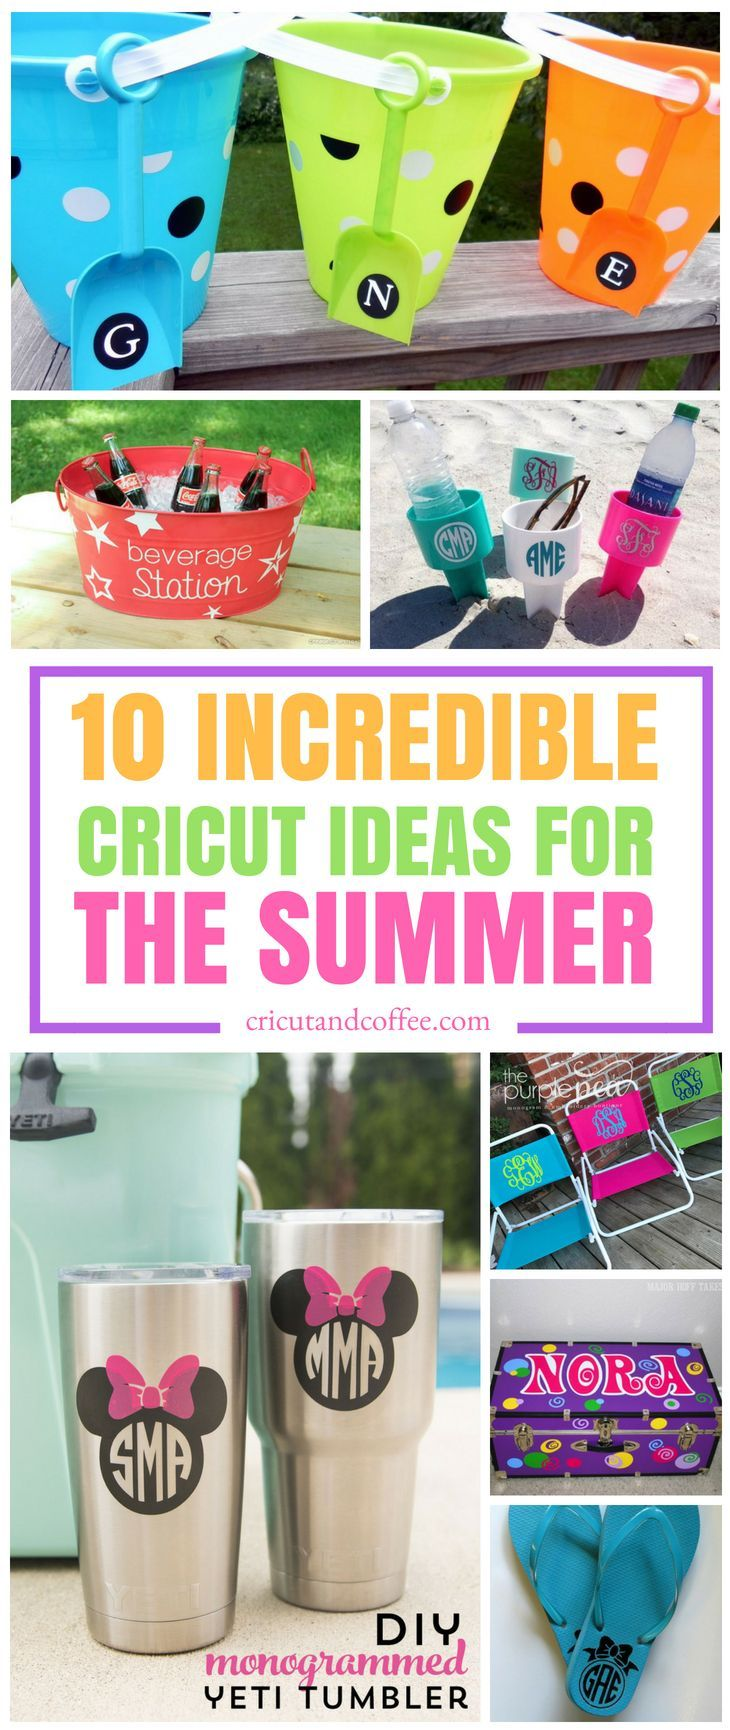 I honestly can not wait for the summer to get here so I can try to make some of these Cricut projects. SHARE and REPIN! #summer #cricut #cricutideas #cricutexploreone #cricutexploreair2 #crafts #diy #summercrafts #summerprojects #craftstosell